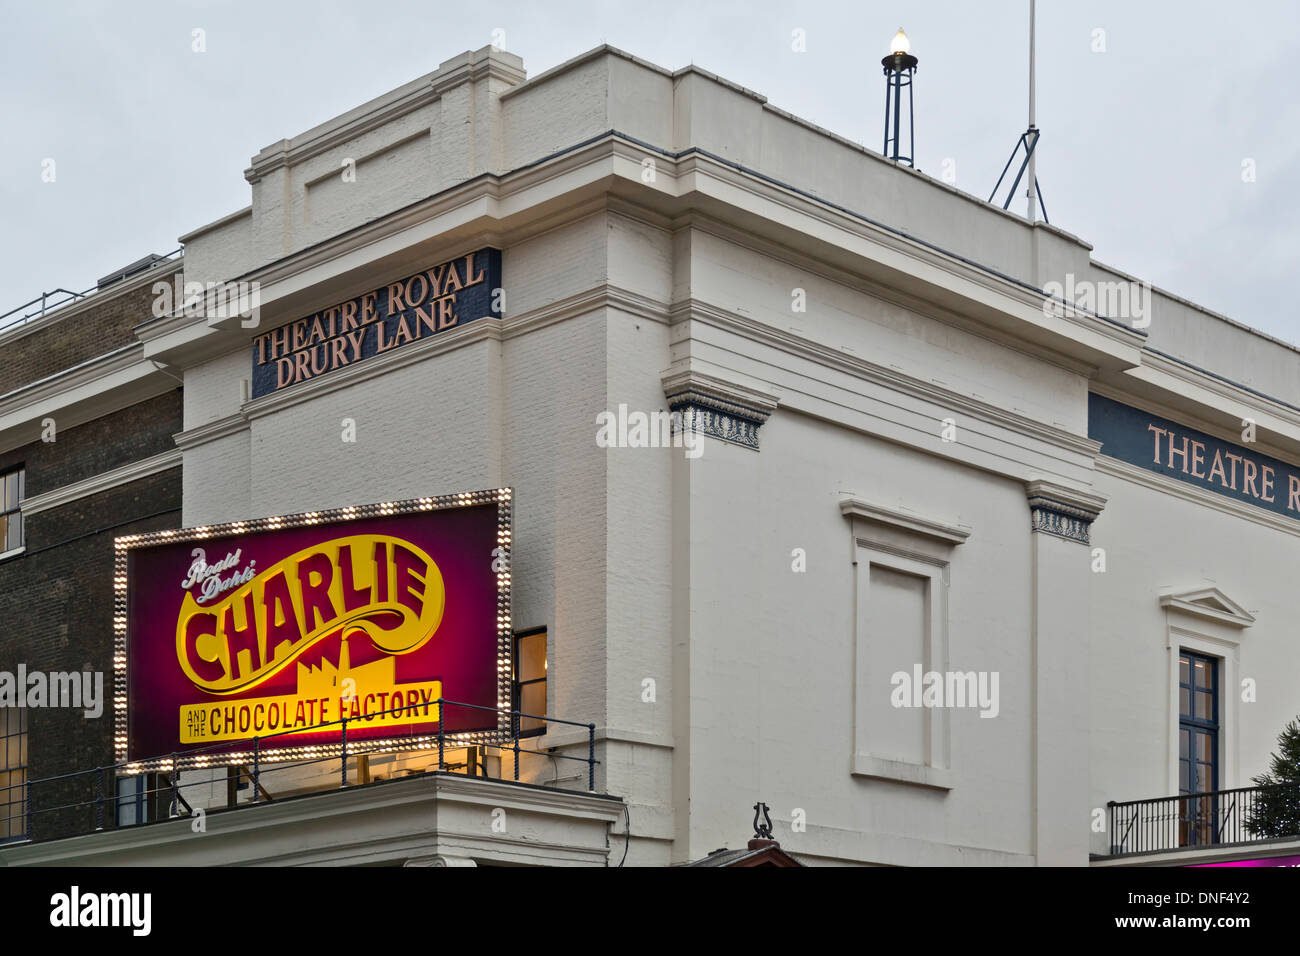 Roald Dahl's Charlie and the Chocolate Factory West End musical at the Theatre Royal Drury Lane, London, England - Stock Image